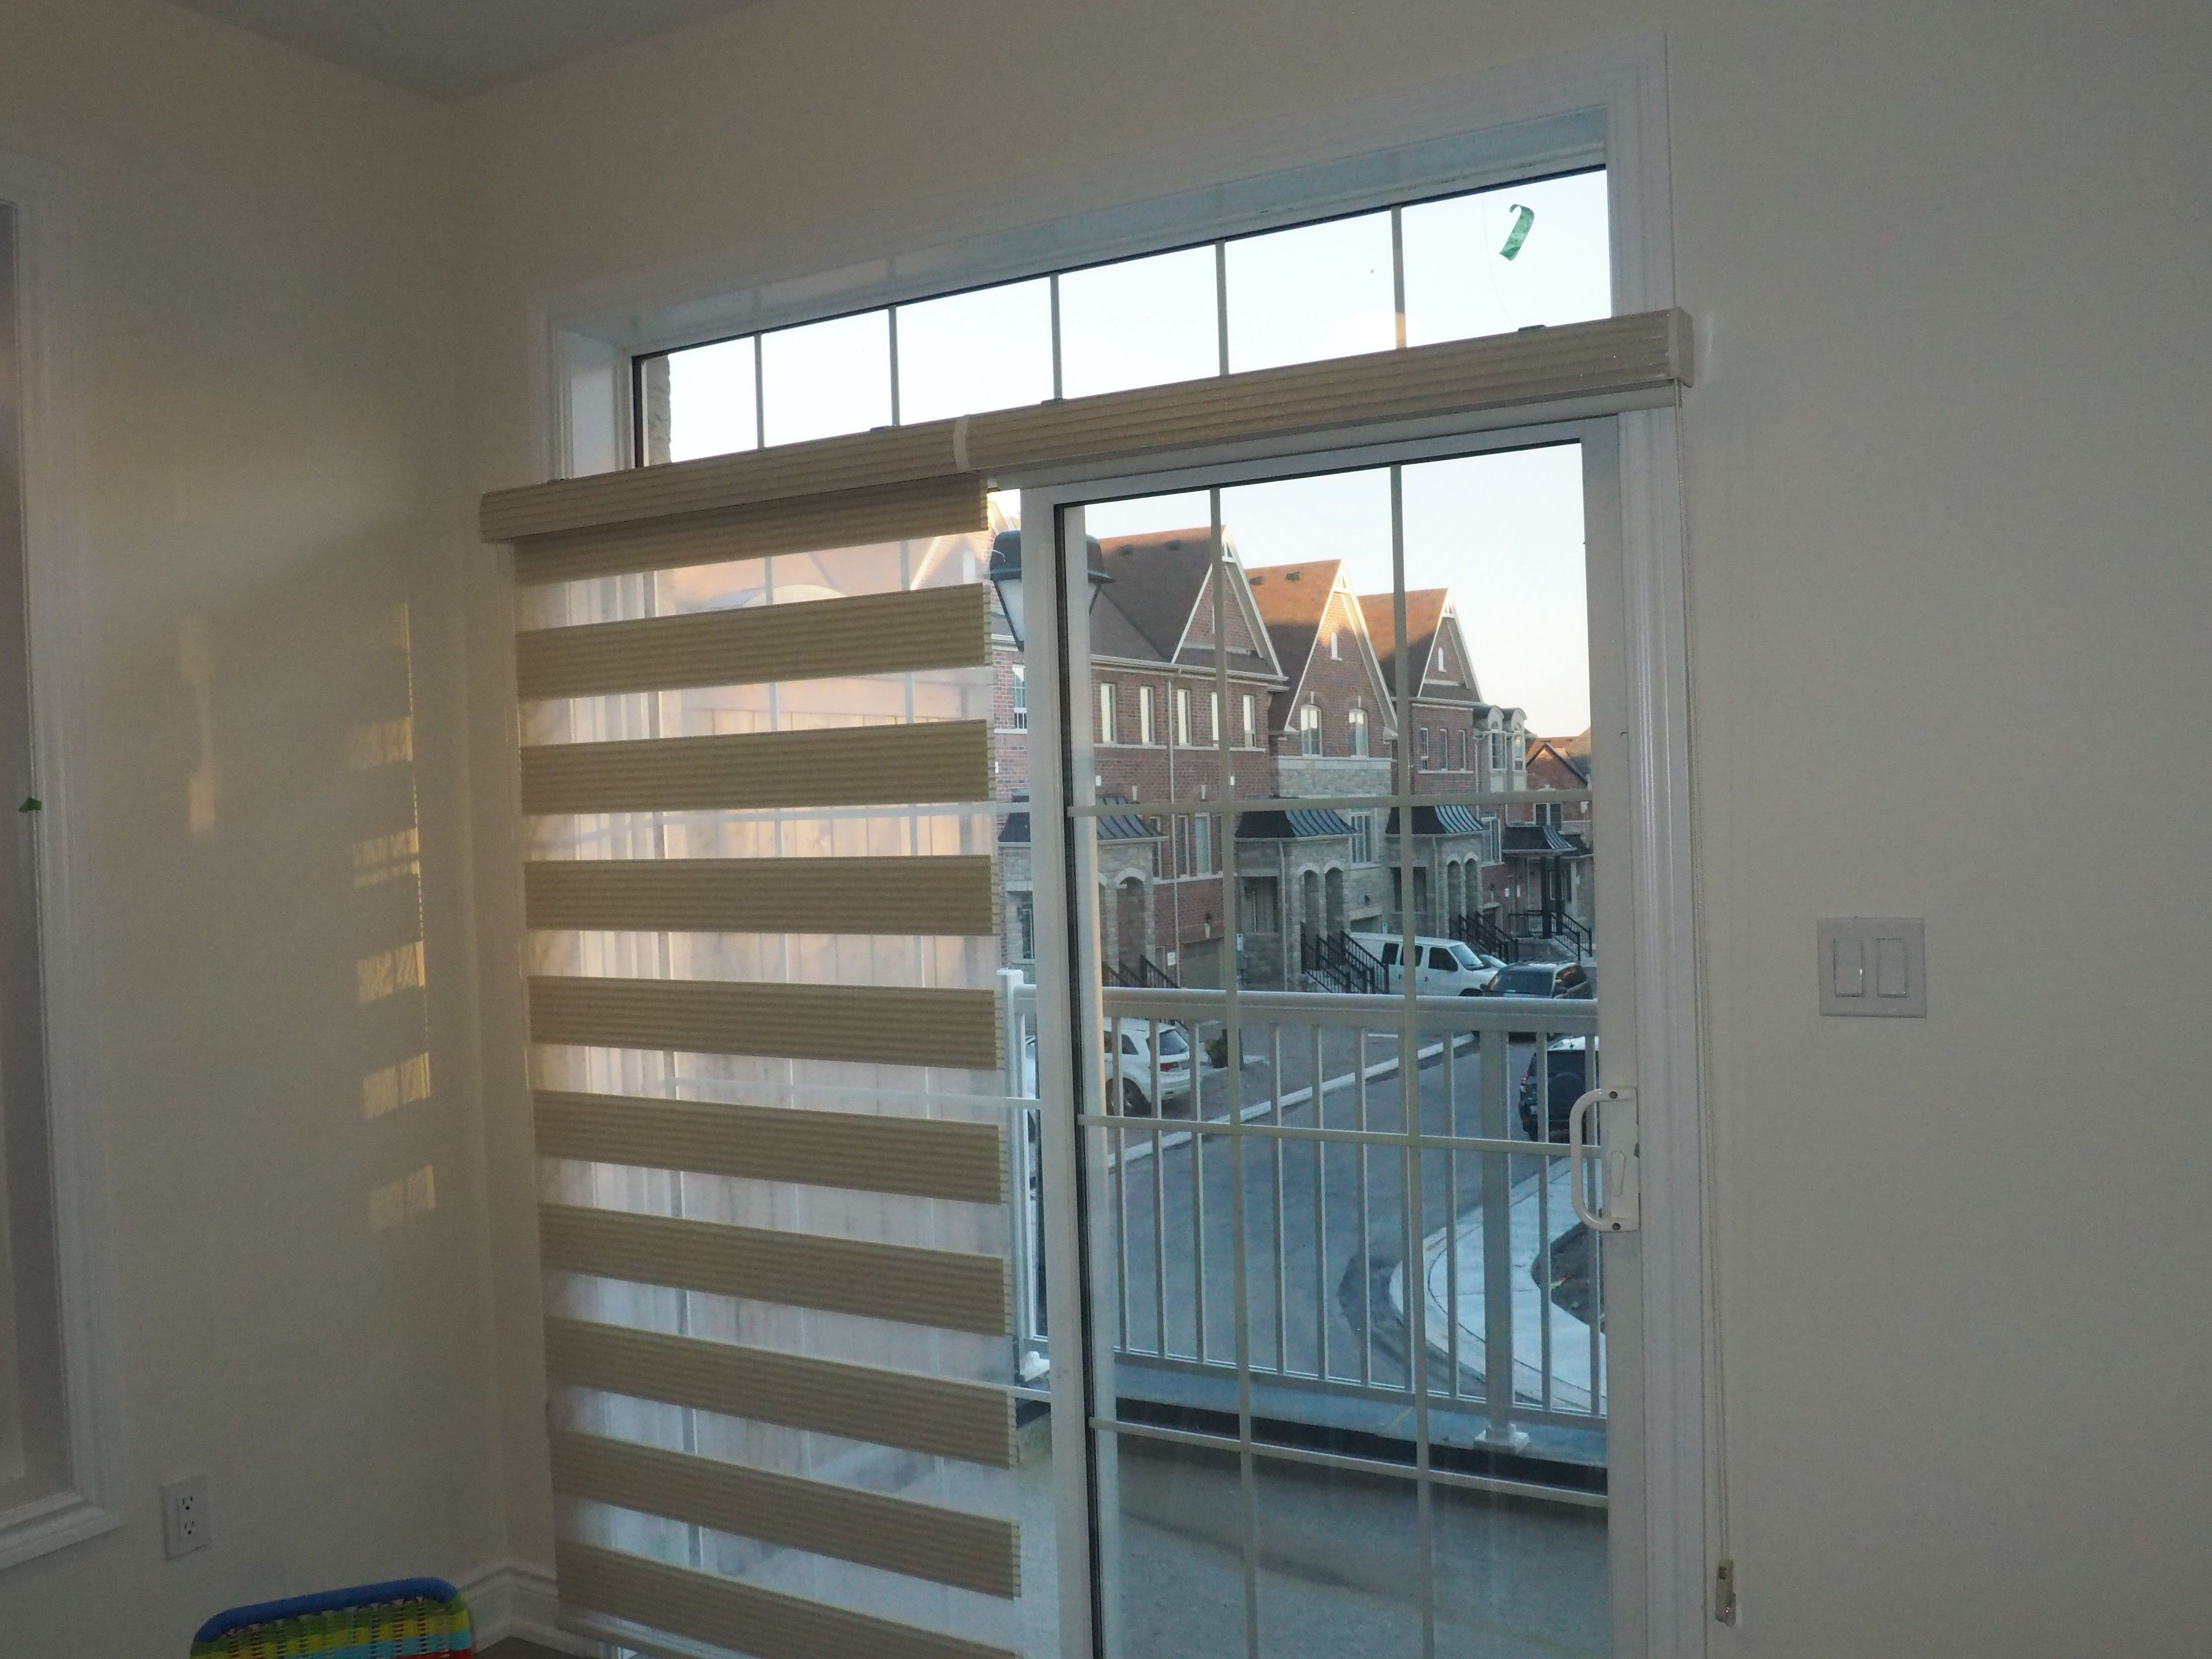 Twin Metal Combi Blinds Can Be Use Side By Side For Patio Sliding Doors With Cord On Left For Left Blind And Right And F Door Blinds Blinds Sliding Door Blinds